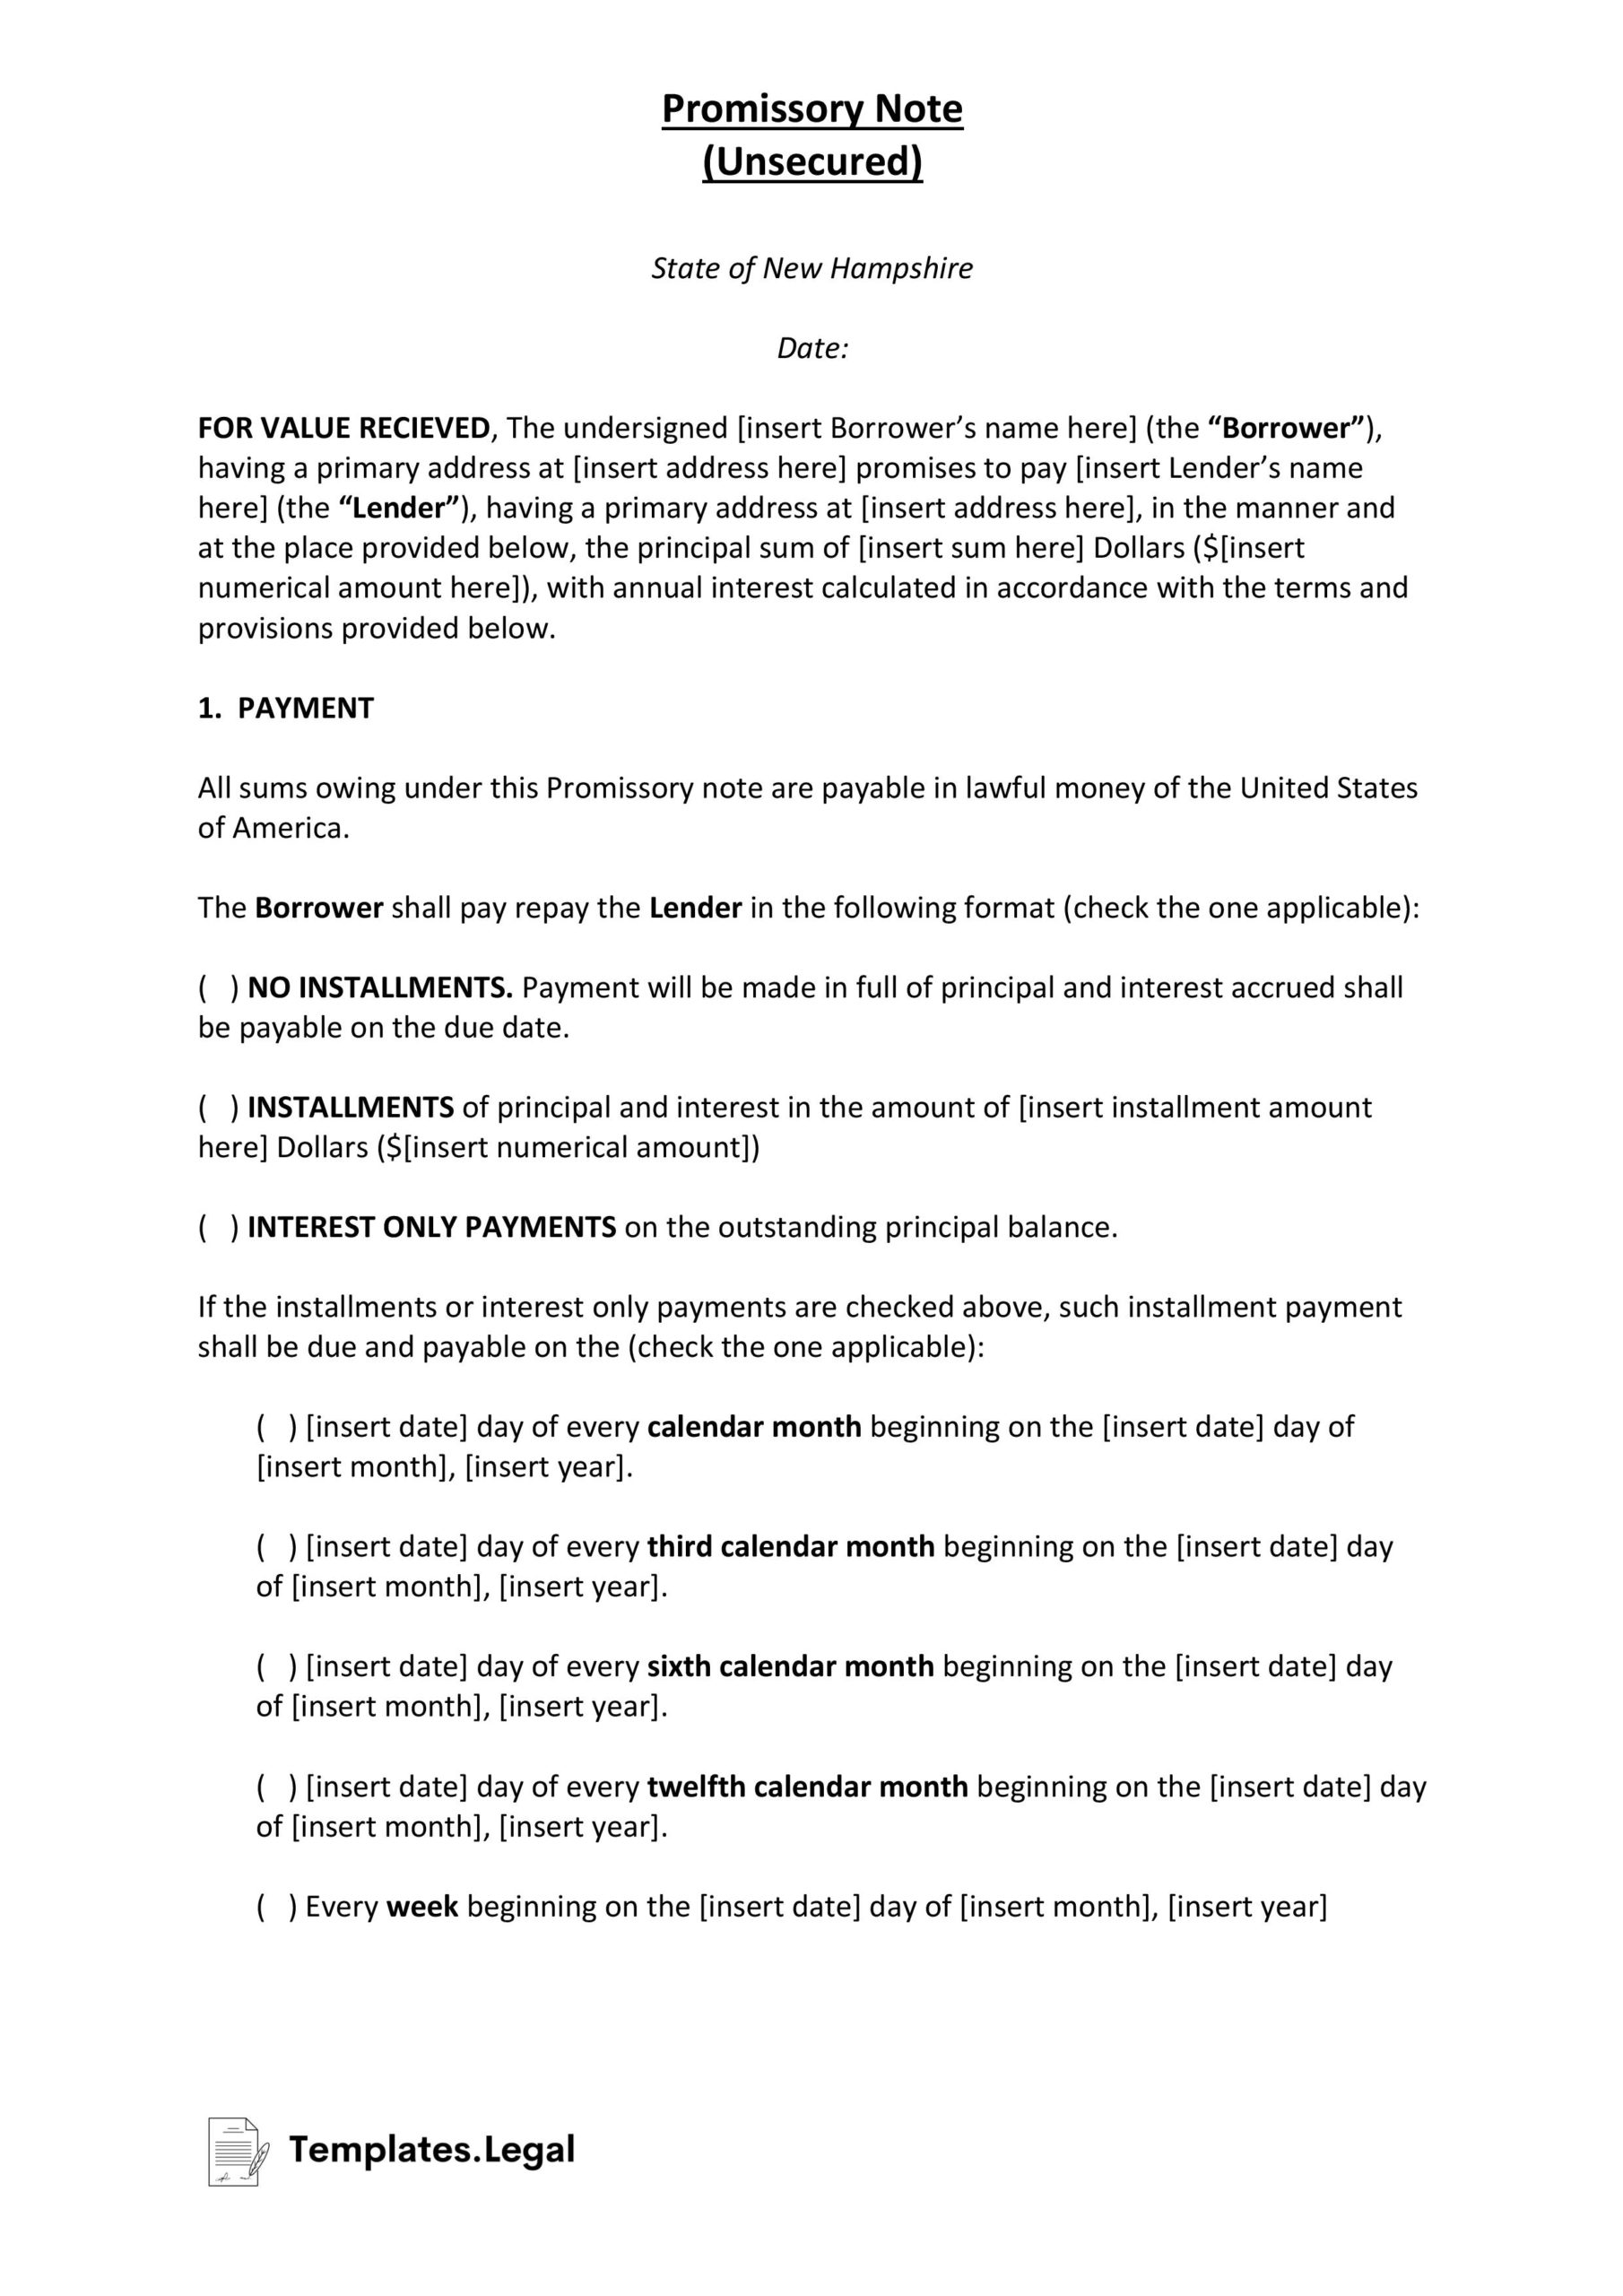 New Hampshire Unsecured Promissory Note - Templates.Legal